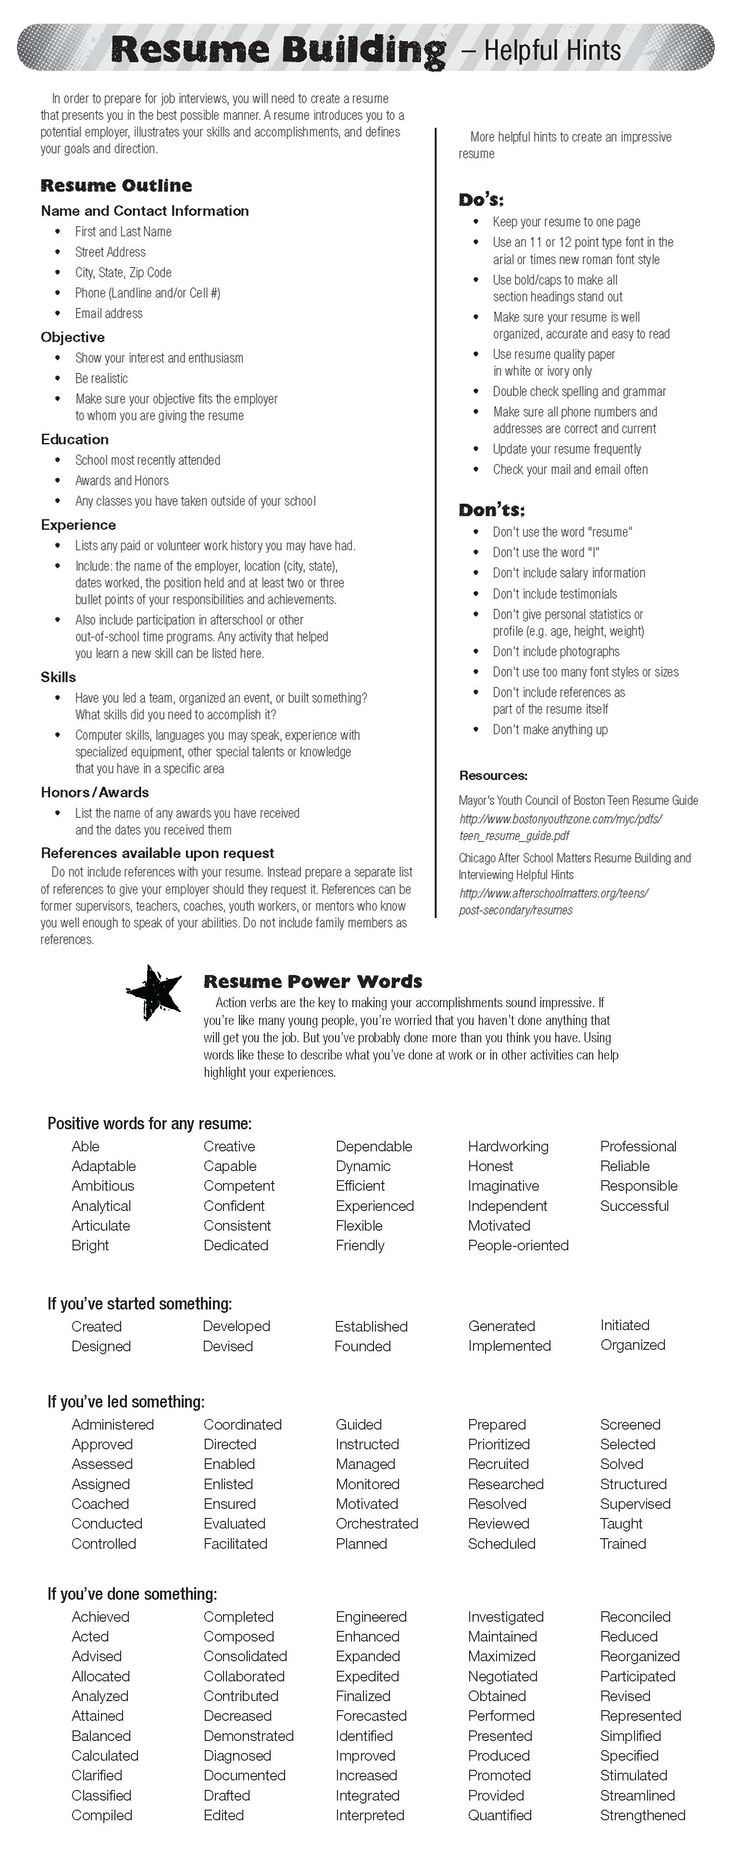 Opposenewapstandardsus  Winning  Ideas About Resume On Pinterest  Cv Format Resume  With Fetching Check Out Todays Resume Building Tips Resume Resumepowerwords With Astonishing Graduate Assistantship Resume Also Resume Server Description In Addition Resume Action Statements And Resume Templates Free For Mac As Well As Resume Examples Sales Additionally Nurse Educator Resume From Pinterestcom With Opposenewapstandardsus  Fetching  Ideas About Resume On Pinterest  Cv Format Resume  With Astonishing Check Out Todays Resume Building Tips Resume Resumepowerwords And Winning Graduate Assistantship Resume Also Resume Server Description In Addition Resume Action Statements From Pinterestcom